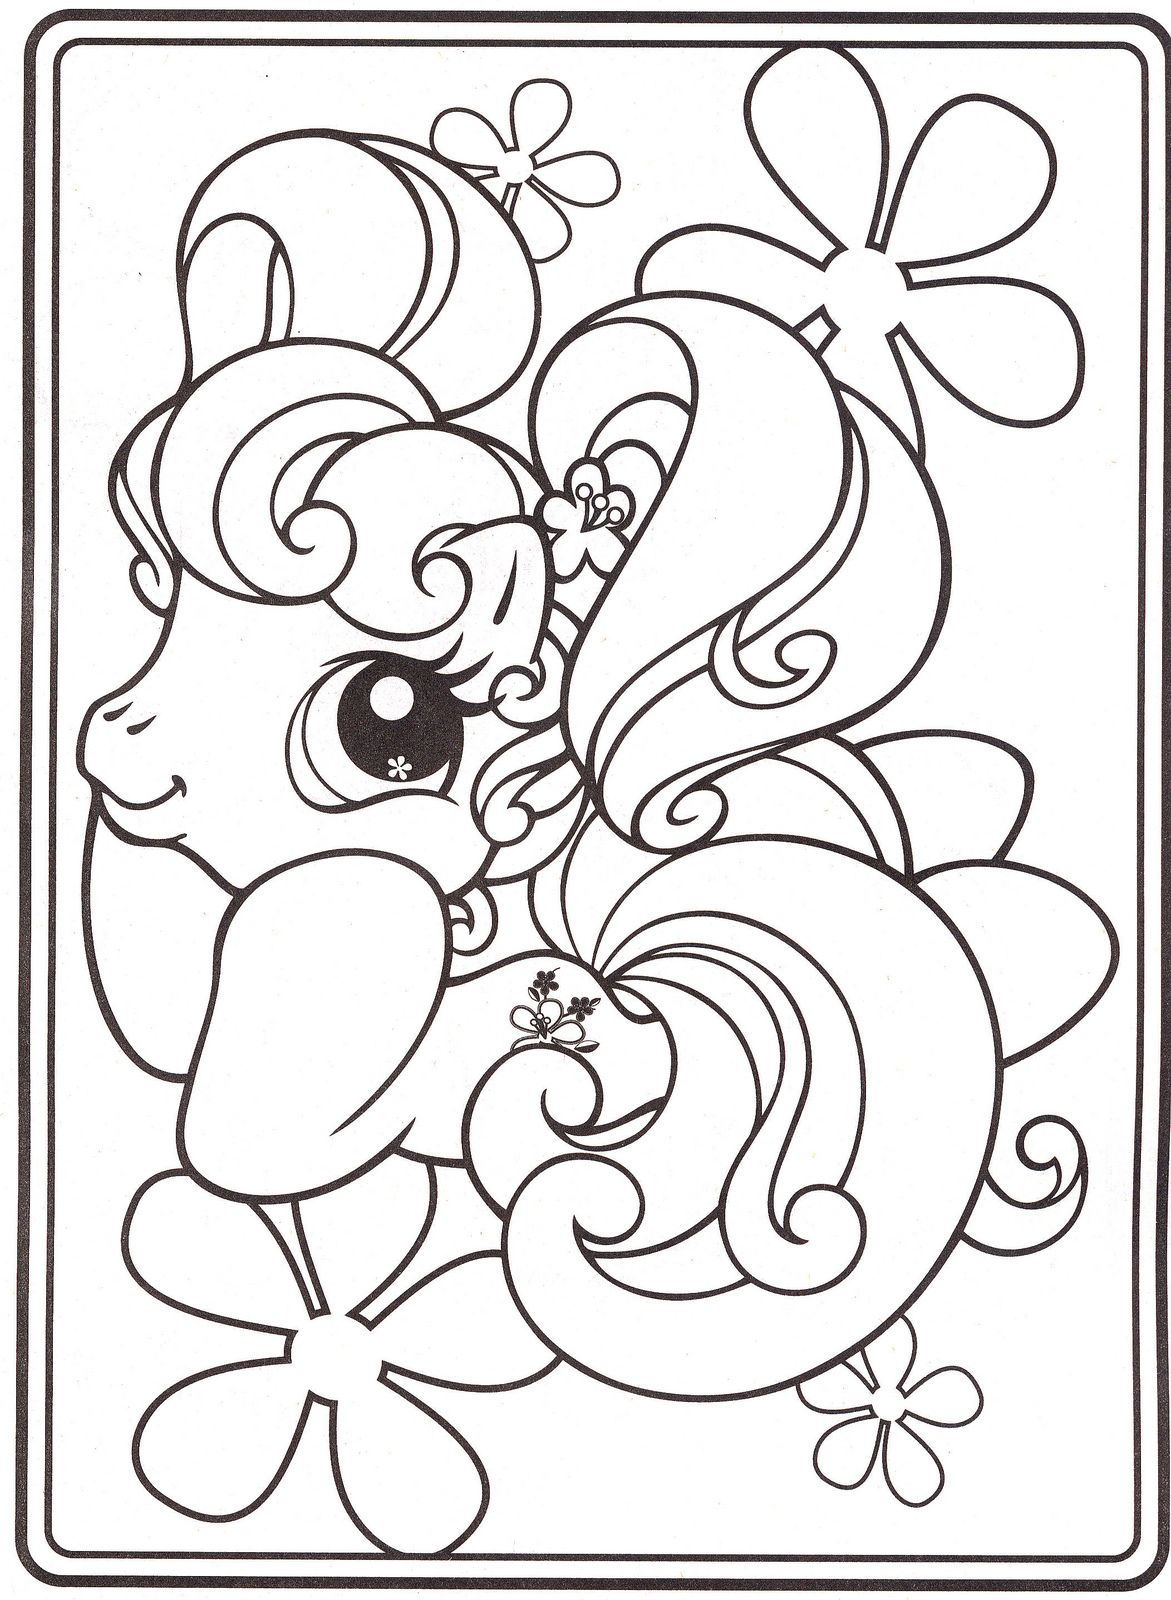 This is a picture of Légend unicorn coloring pages my little pony